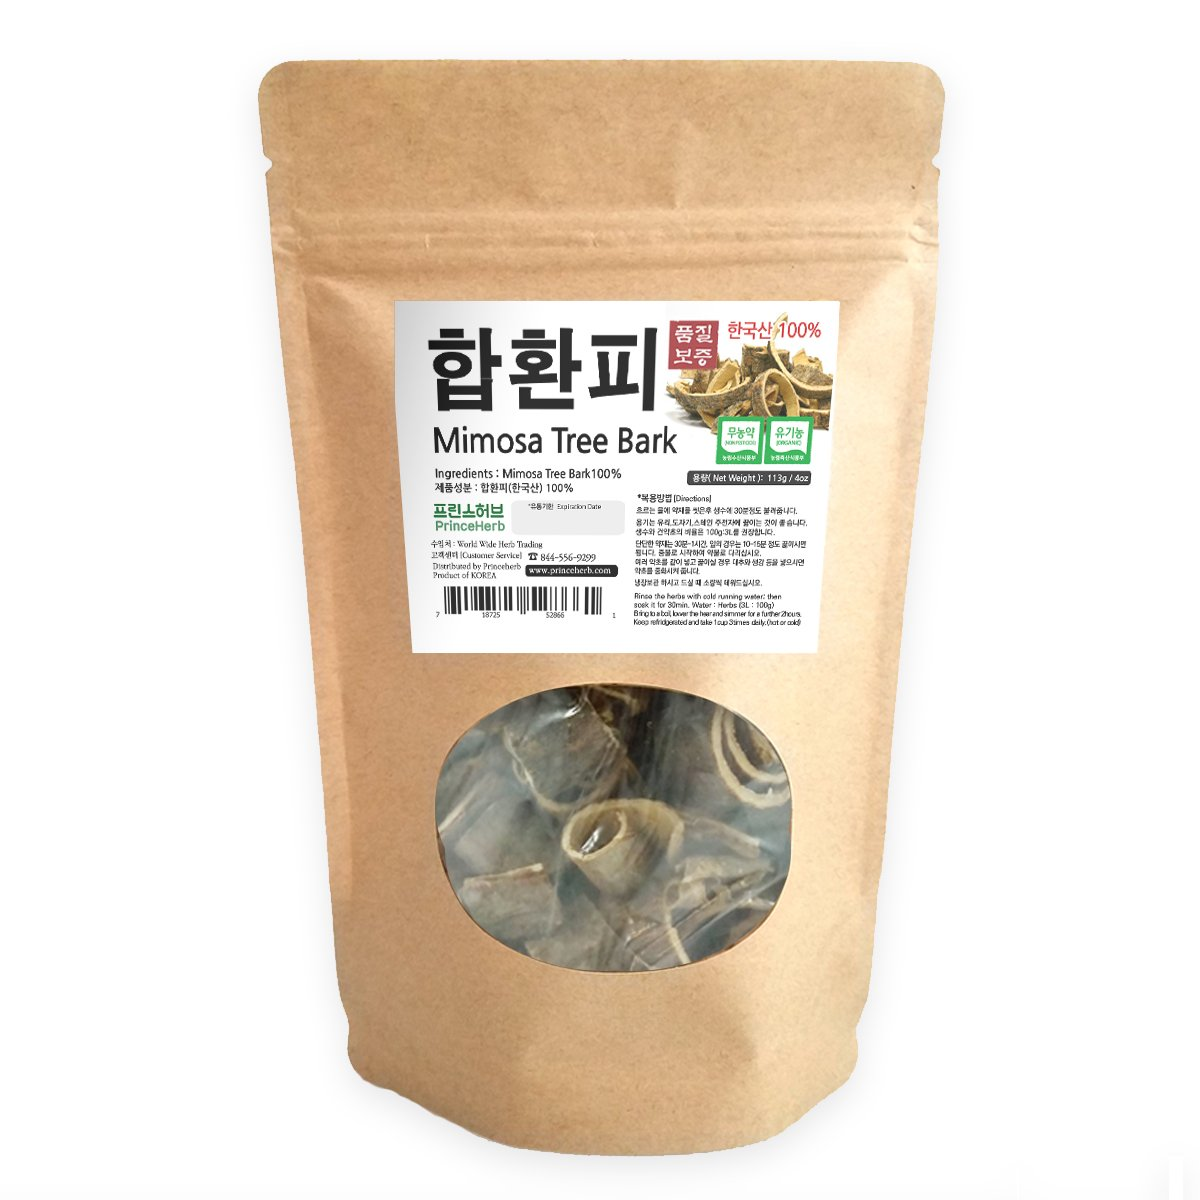 [Medicinal Korean Herb] Albizziae Cortex (Mimosa Tree Bark/Hehuanpi / 합환피) Dried Bulk Herbs 4oz (113g) by HERBstory (Image #2)